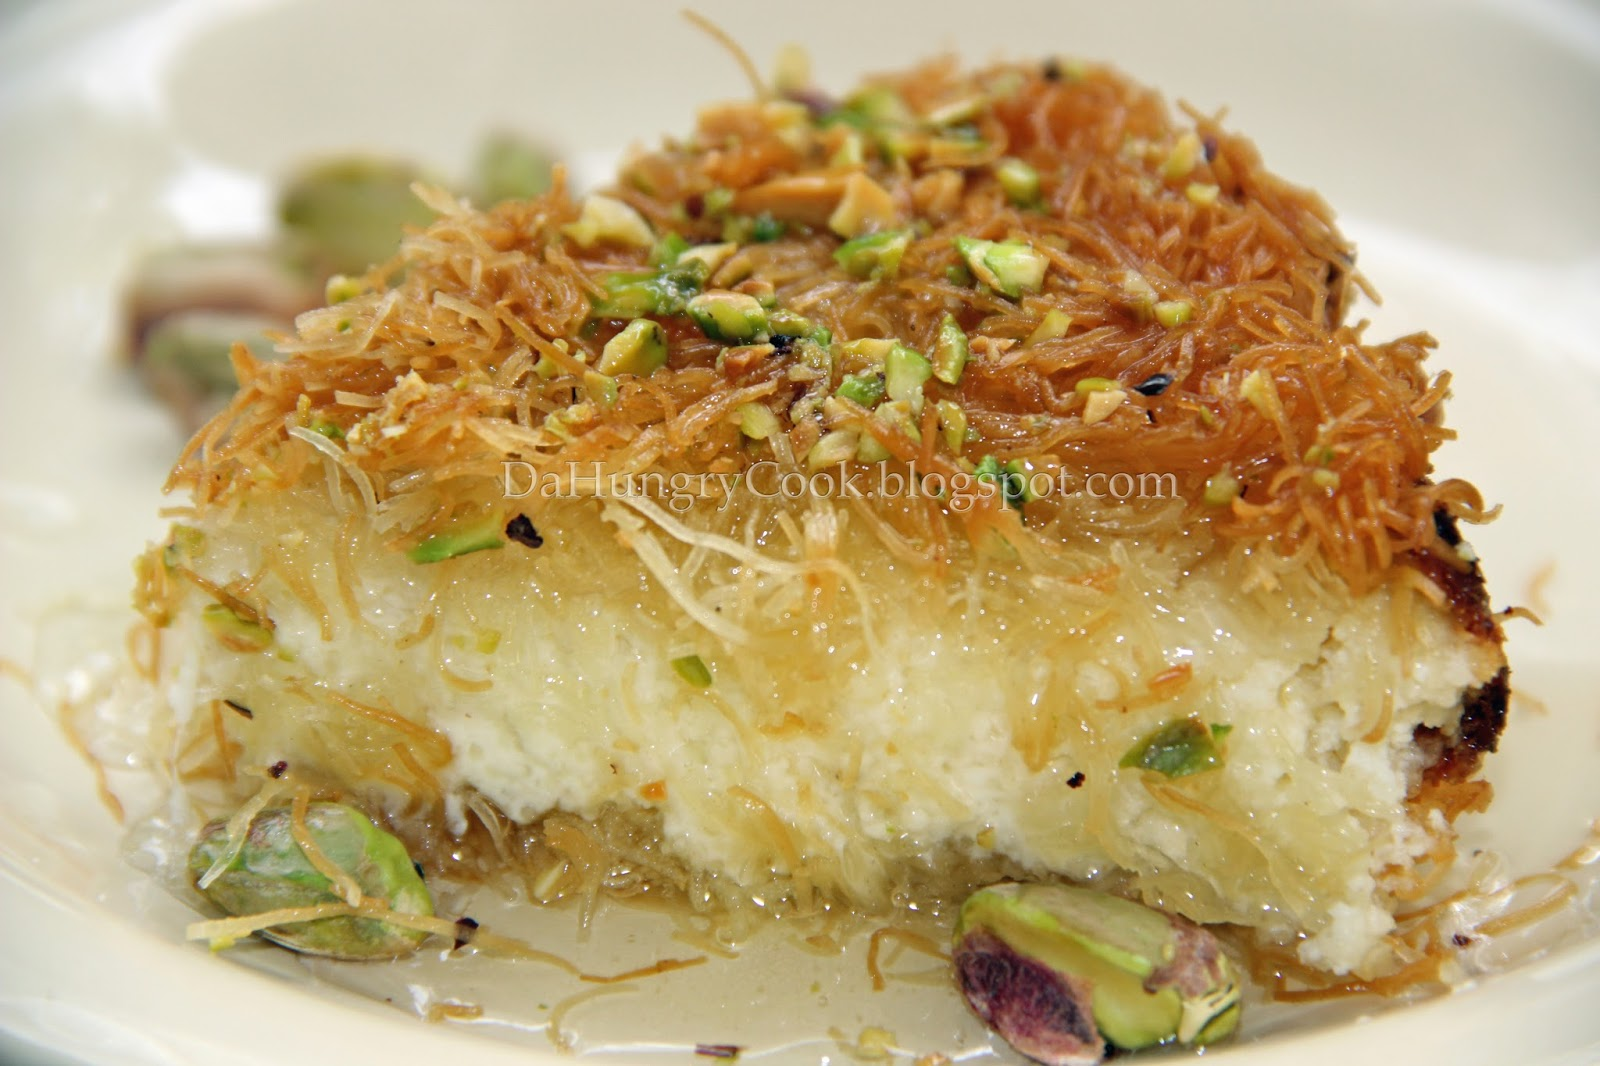 Turkish Desserts - Bing images